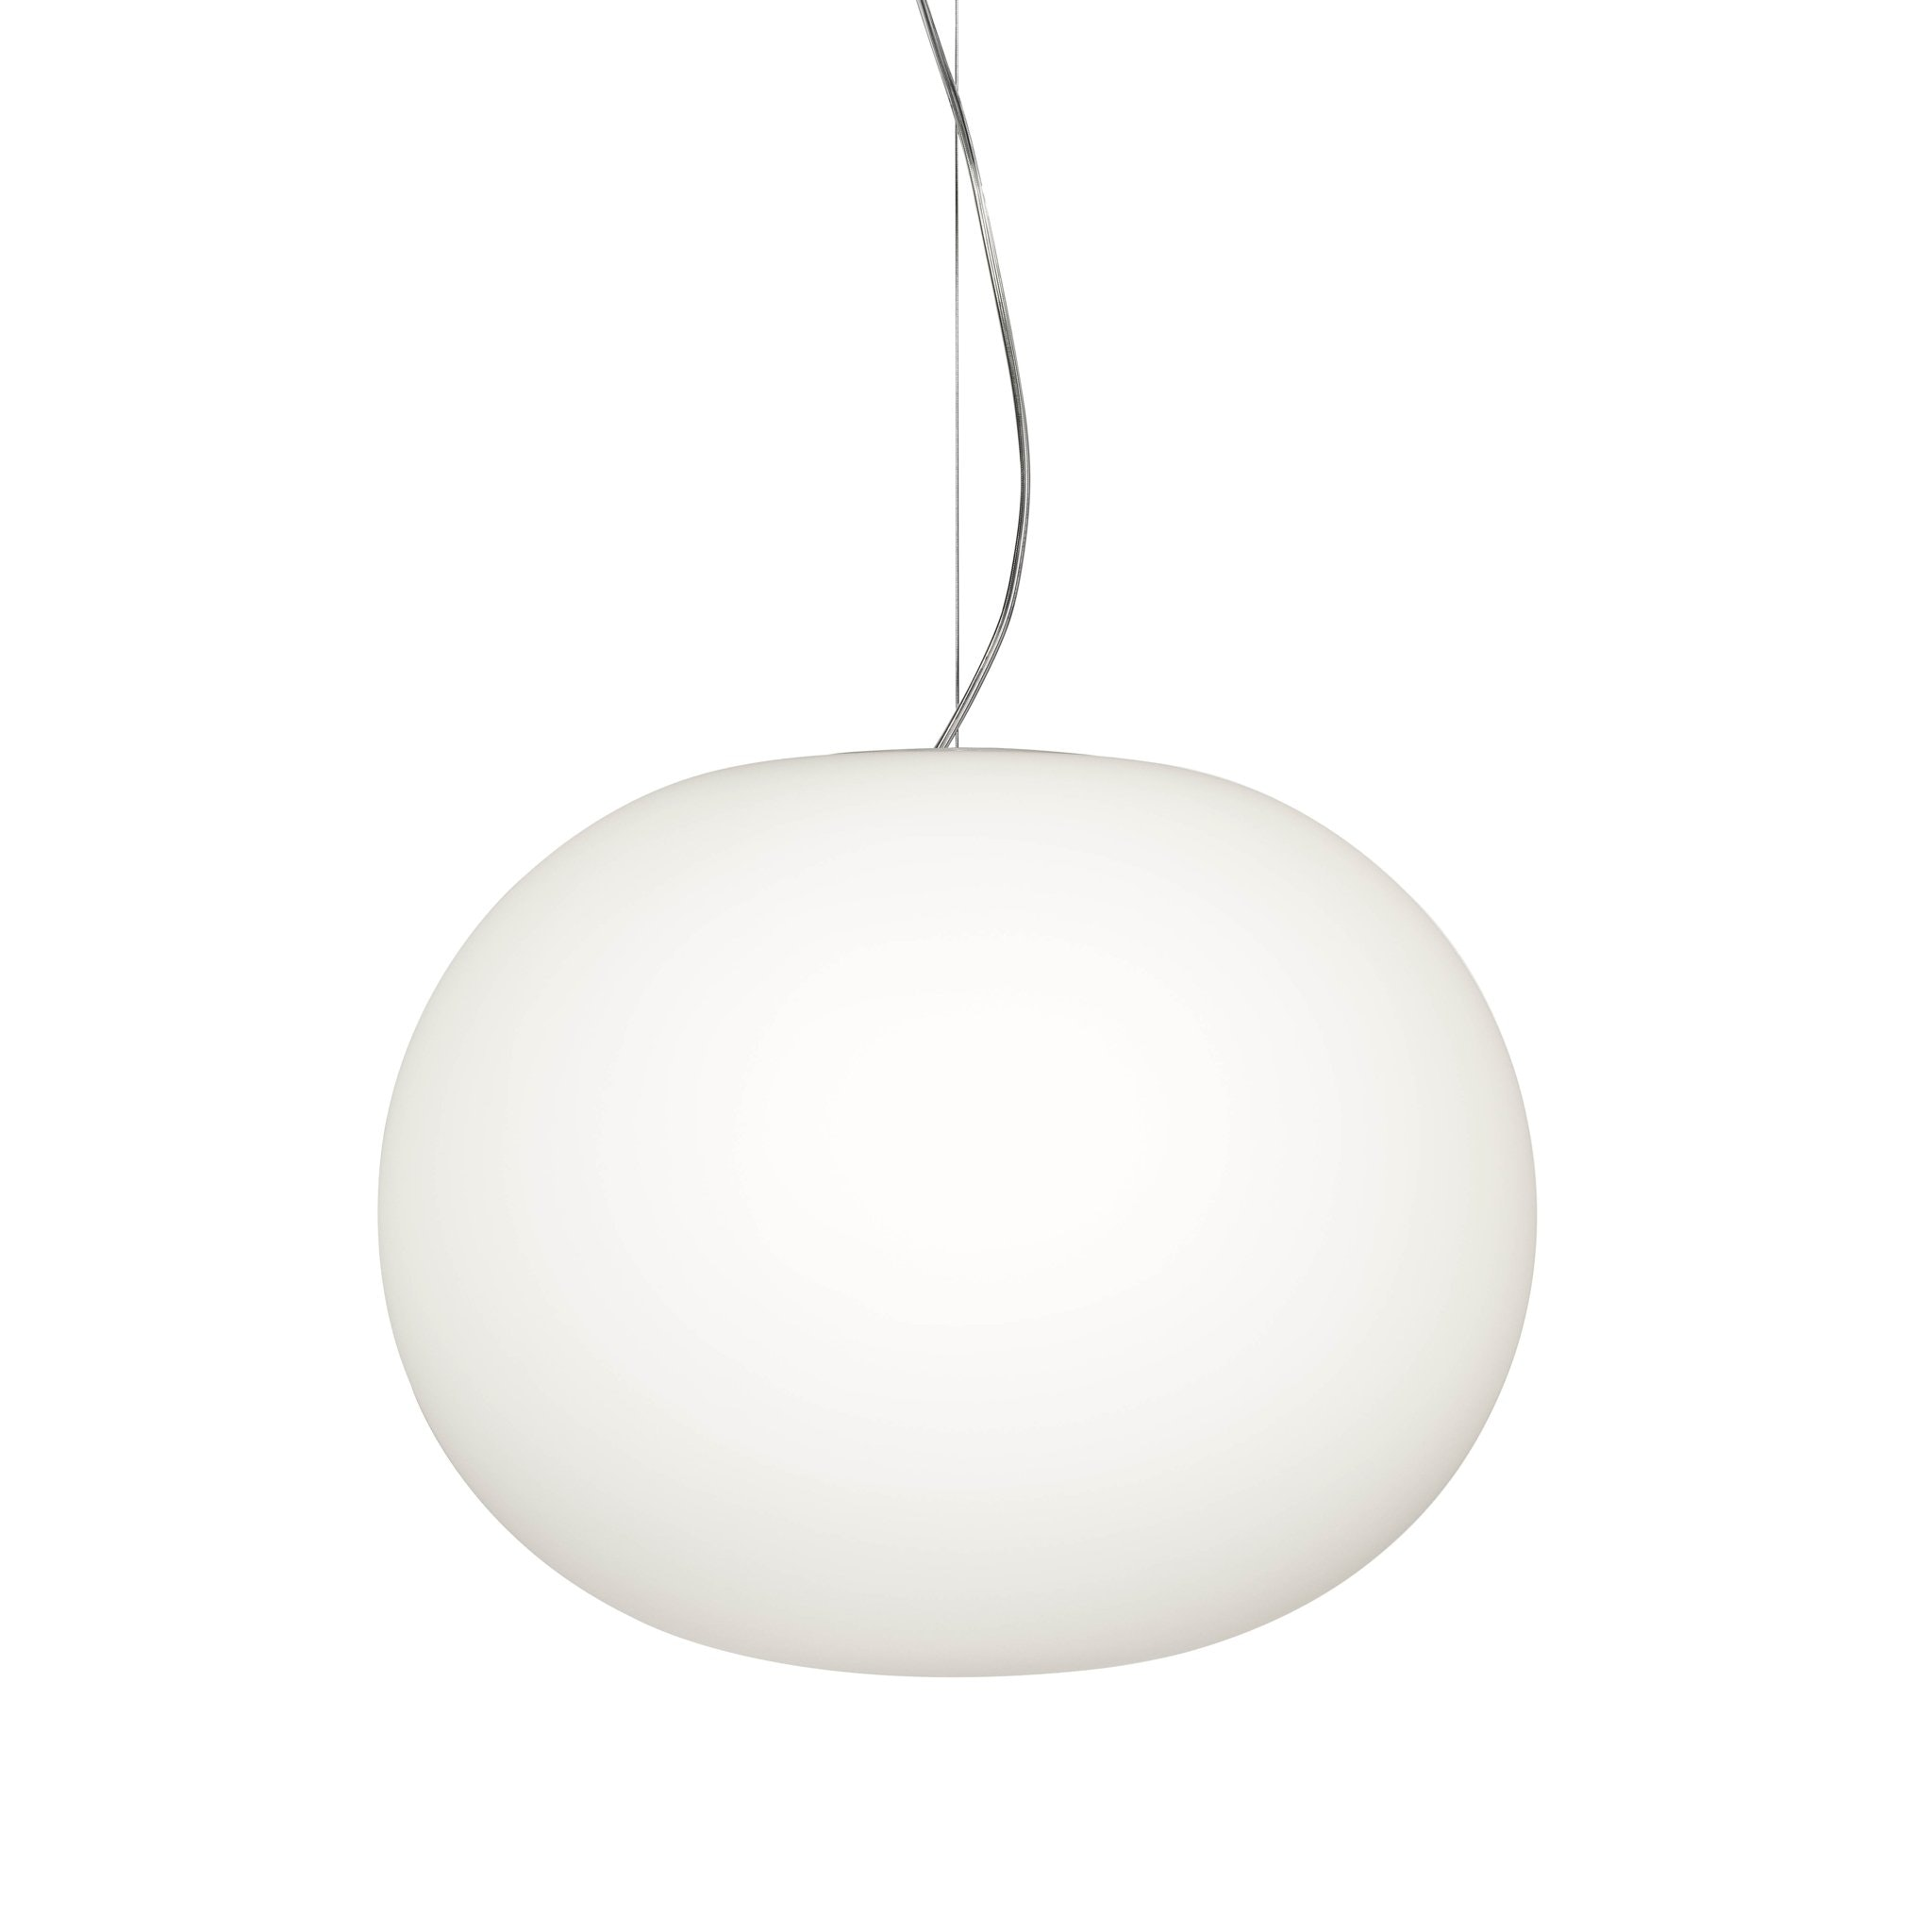 Glo Ball Pendant S2 by Flos